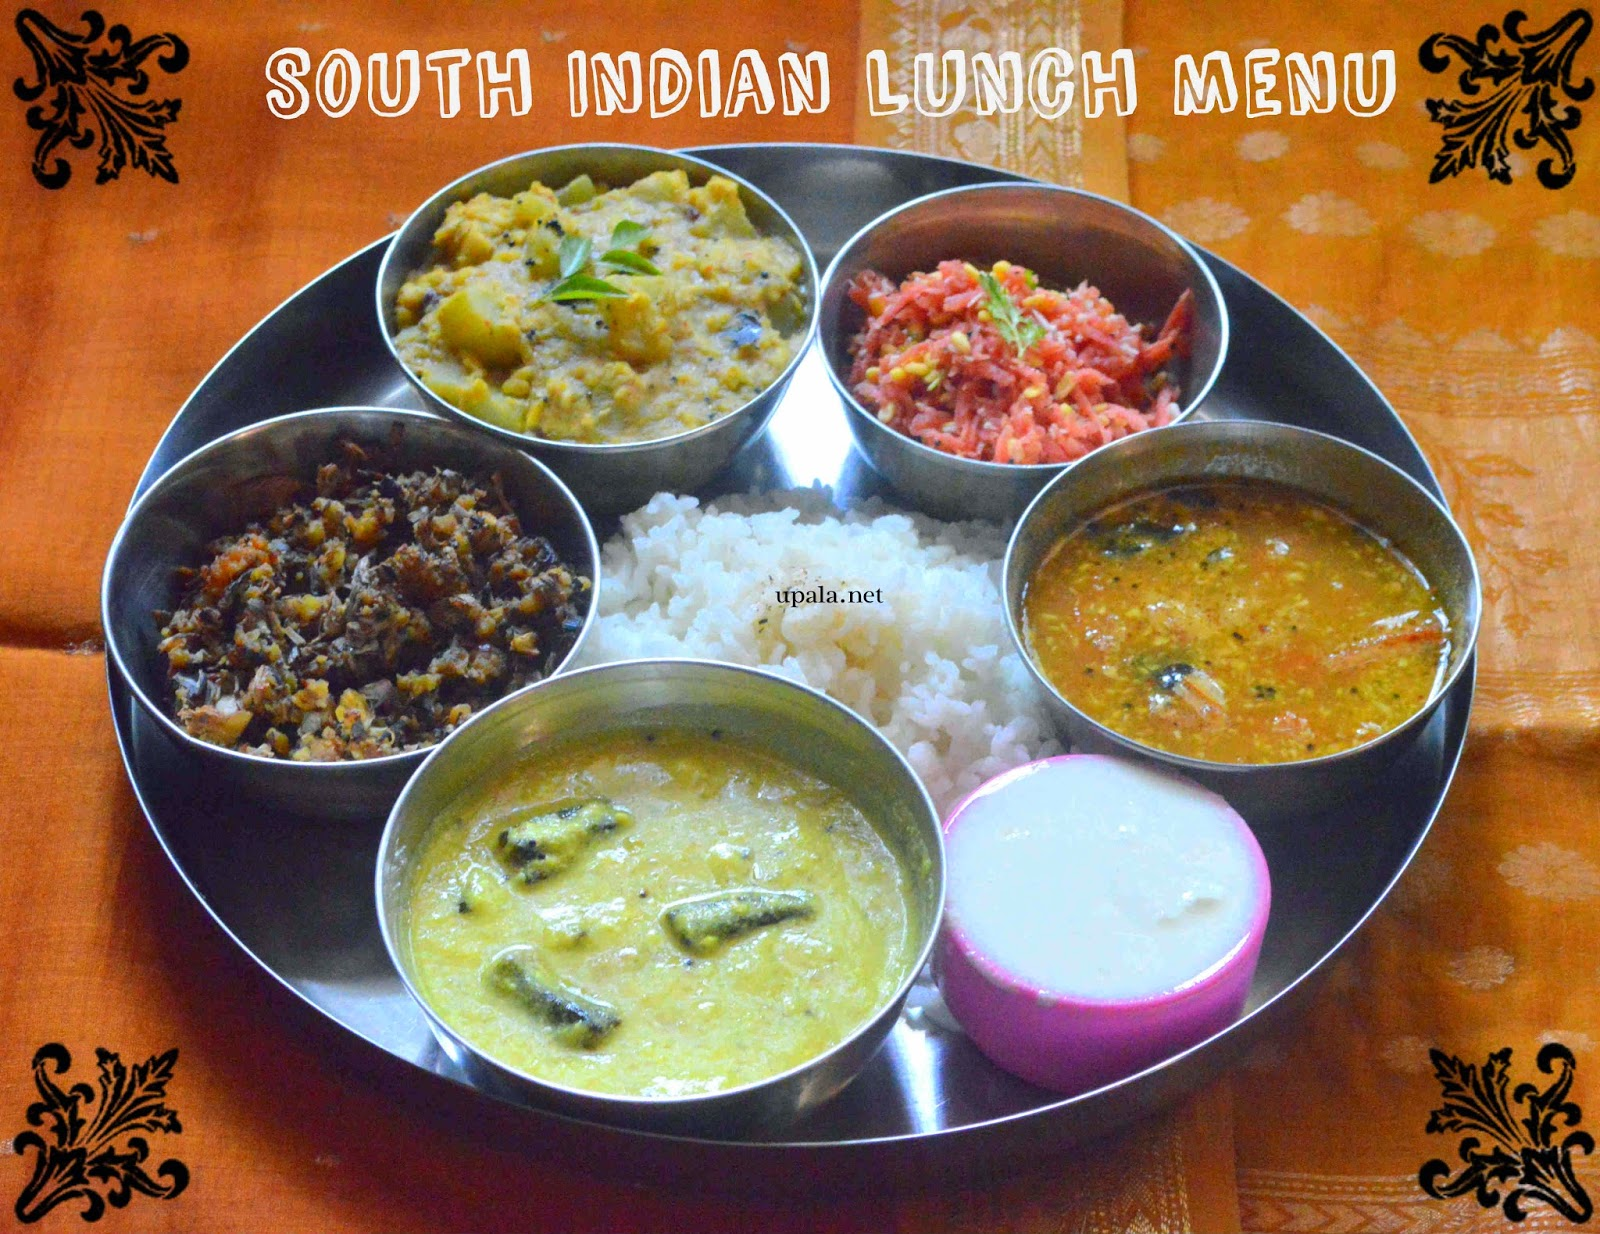 South indian lunch menunu